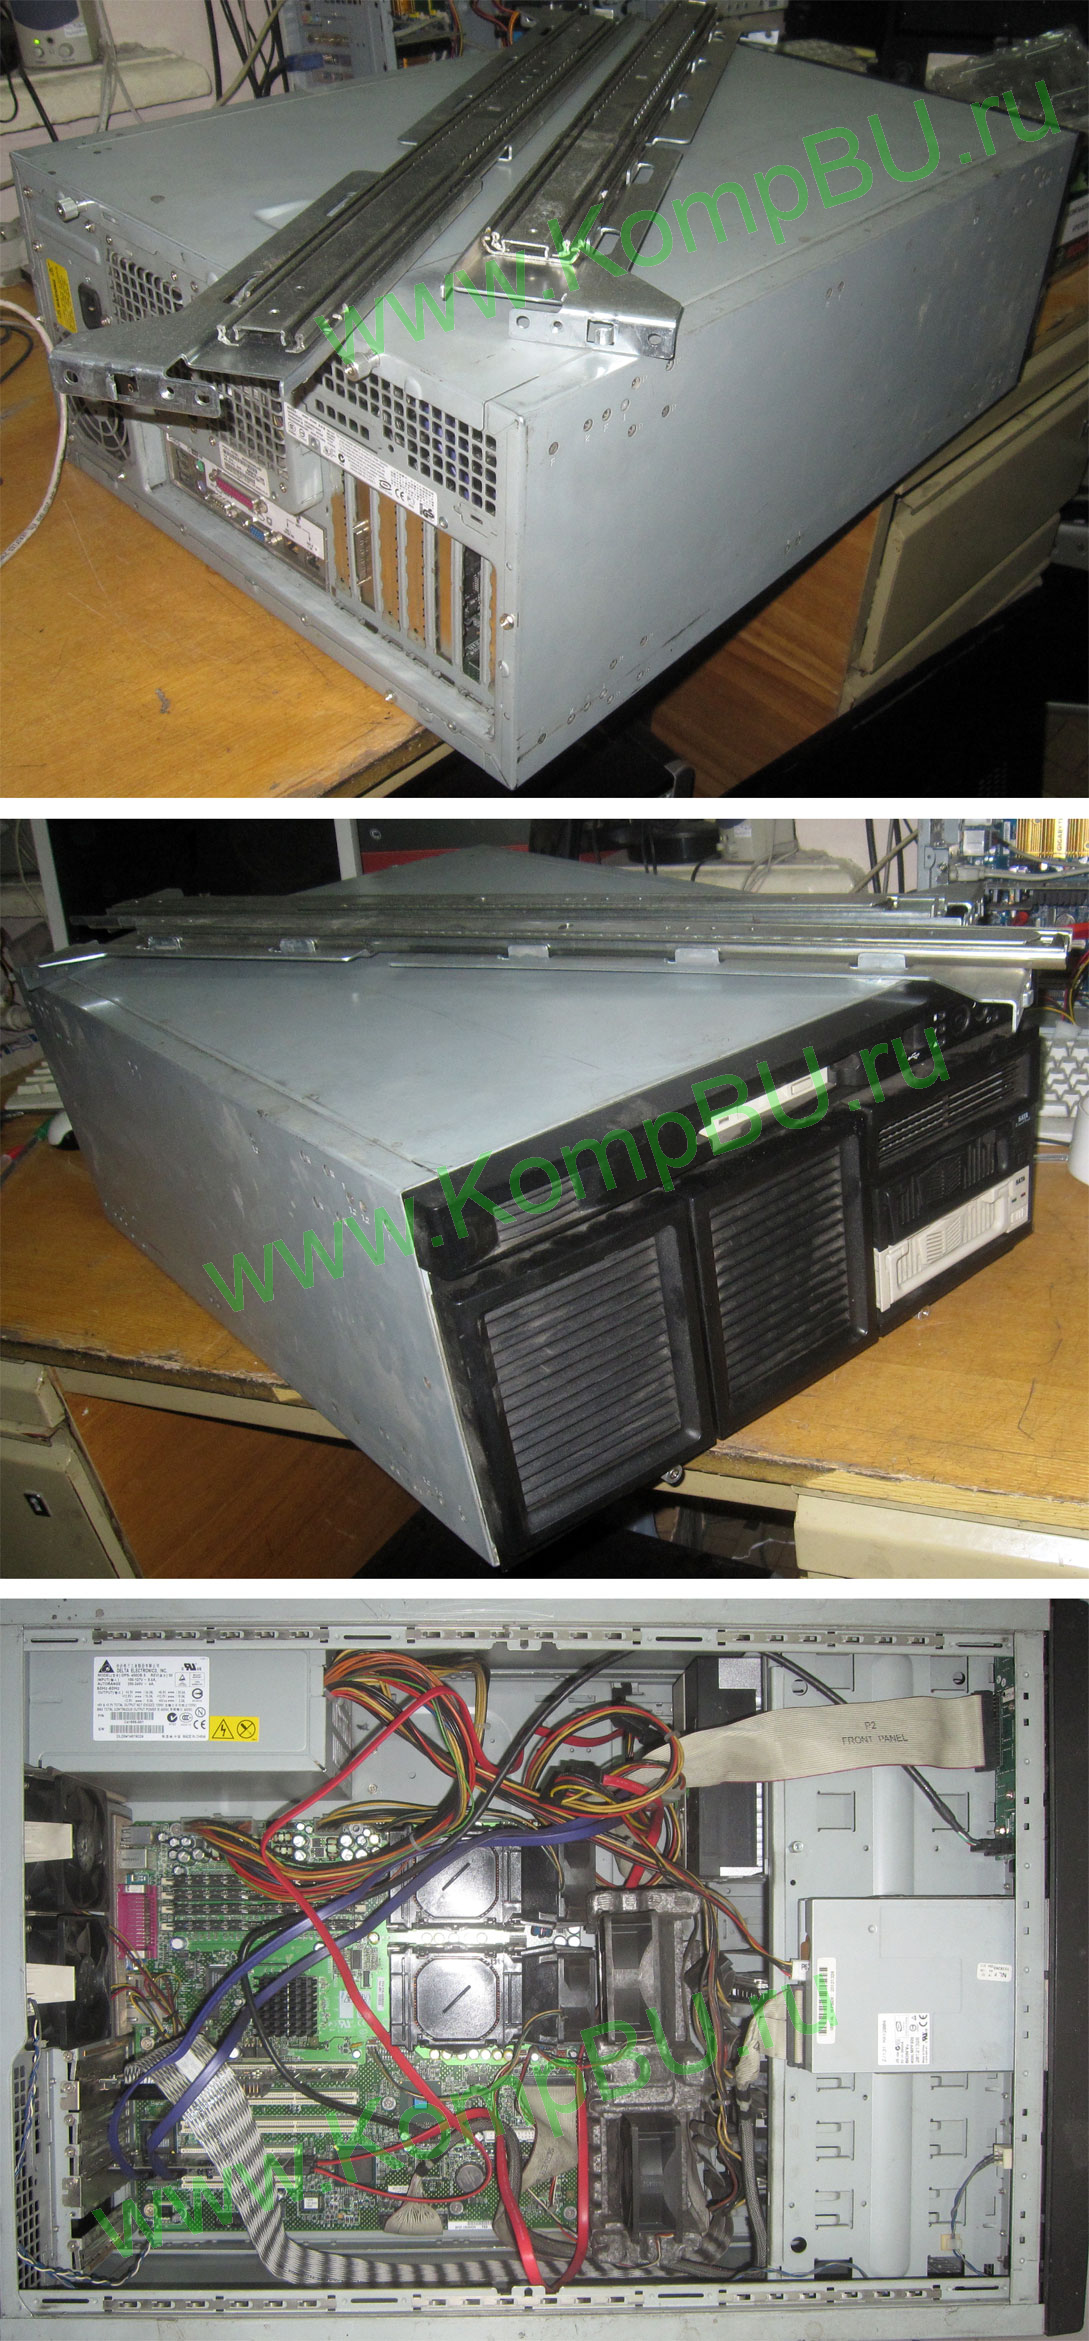 Фото: Б/У сервер 2xXEON 2.4GHz s604 /4096Mb DDR ECC /4x36Gb SCSI Ultra320 10000 rpm /no optic drive /LAN 1G + LAN 100mbit /450W ATX 5U